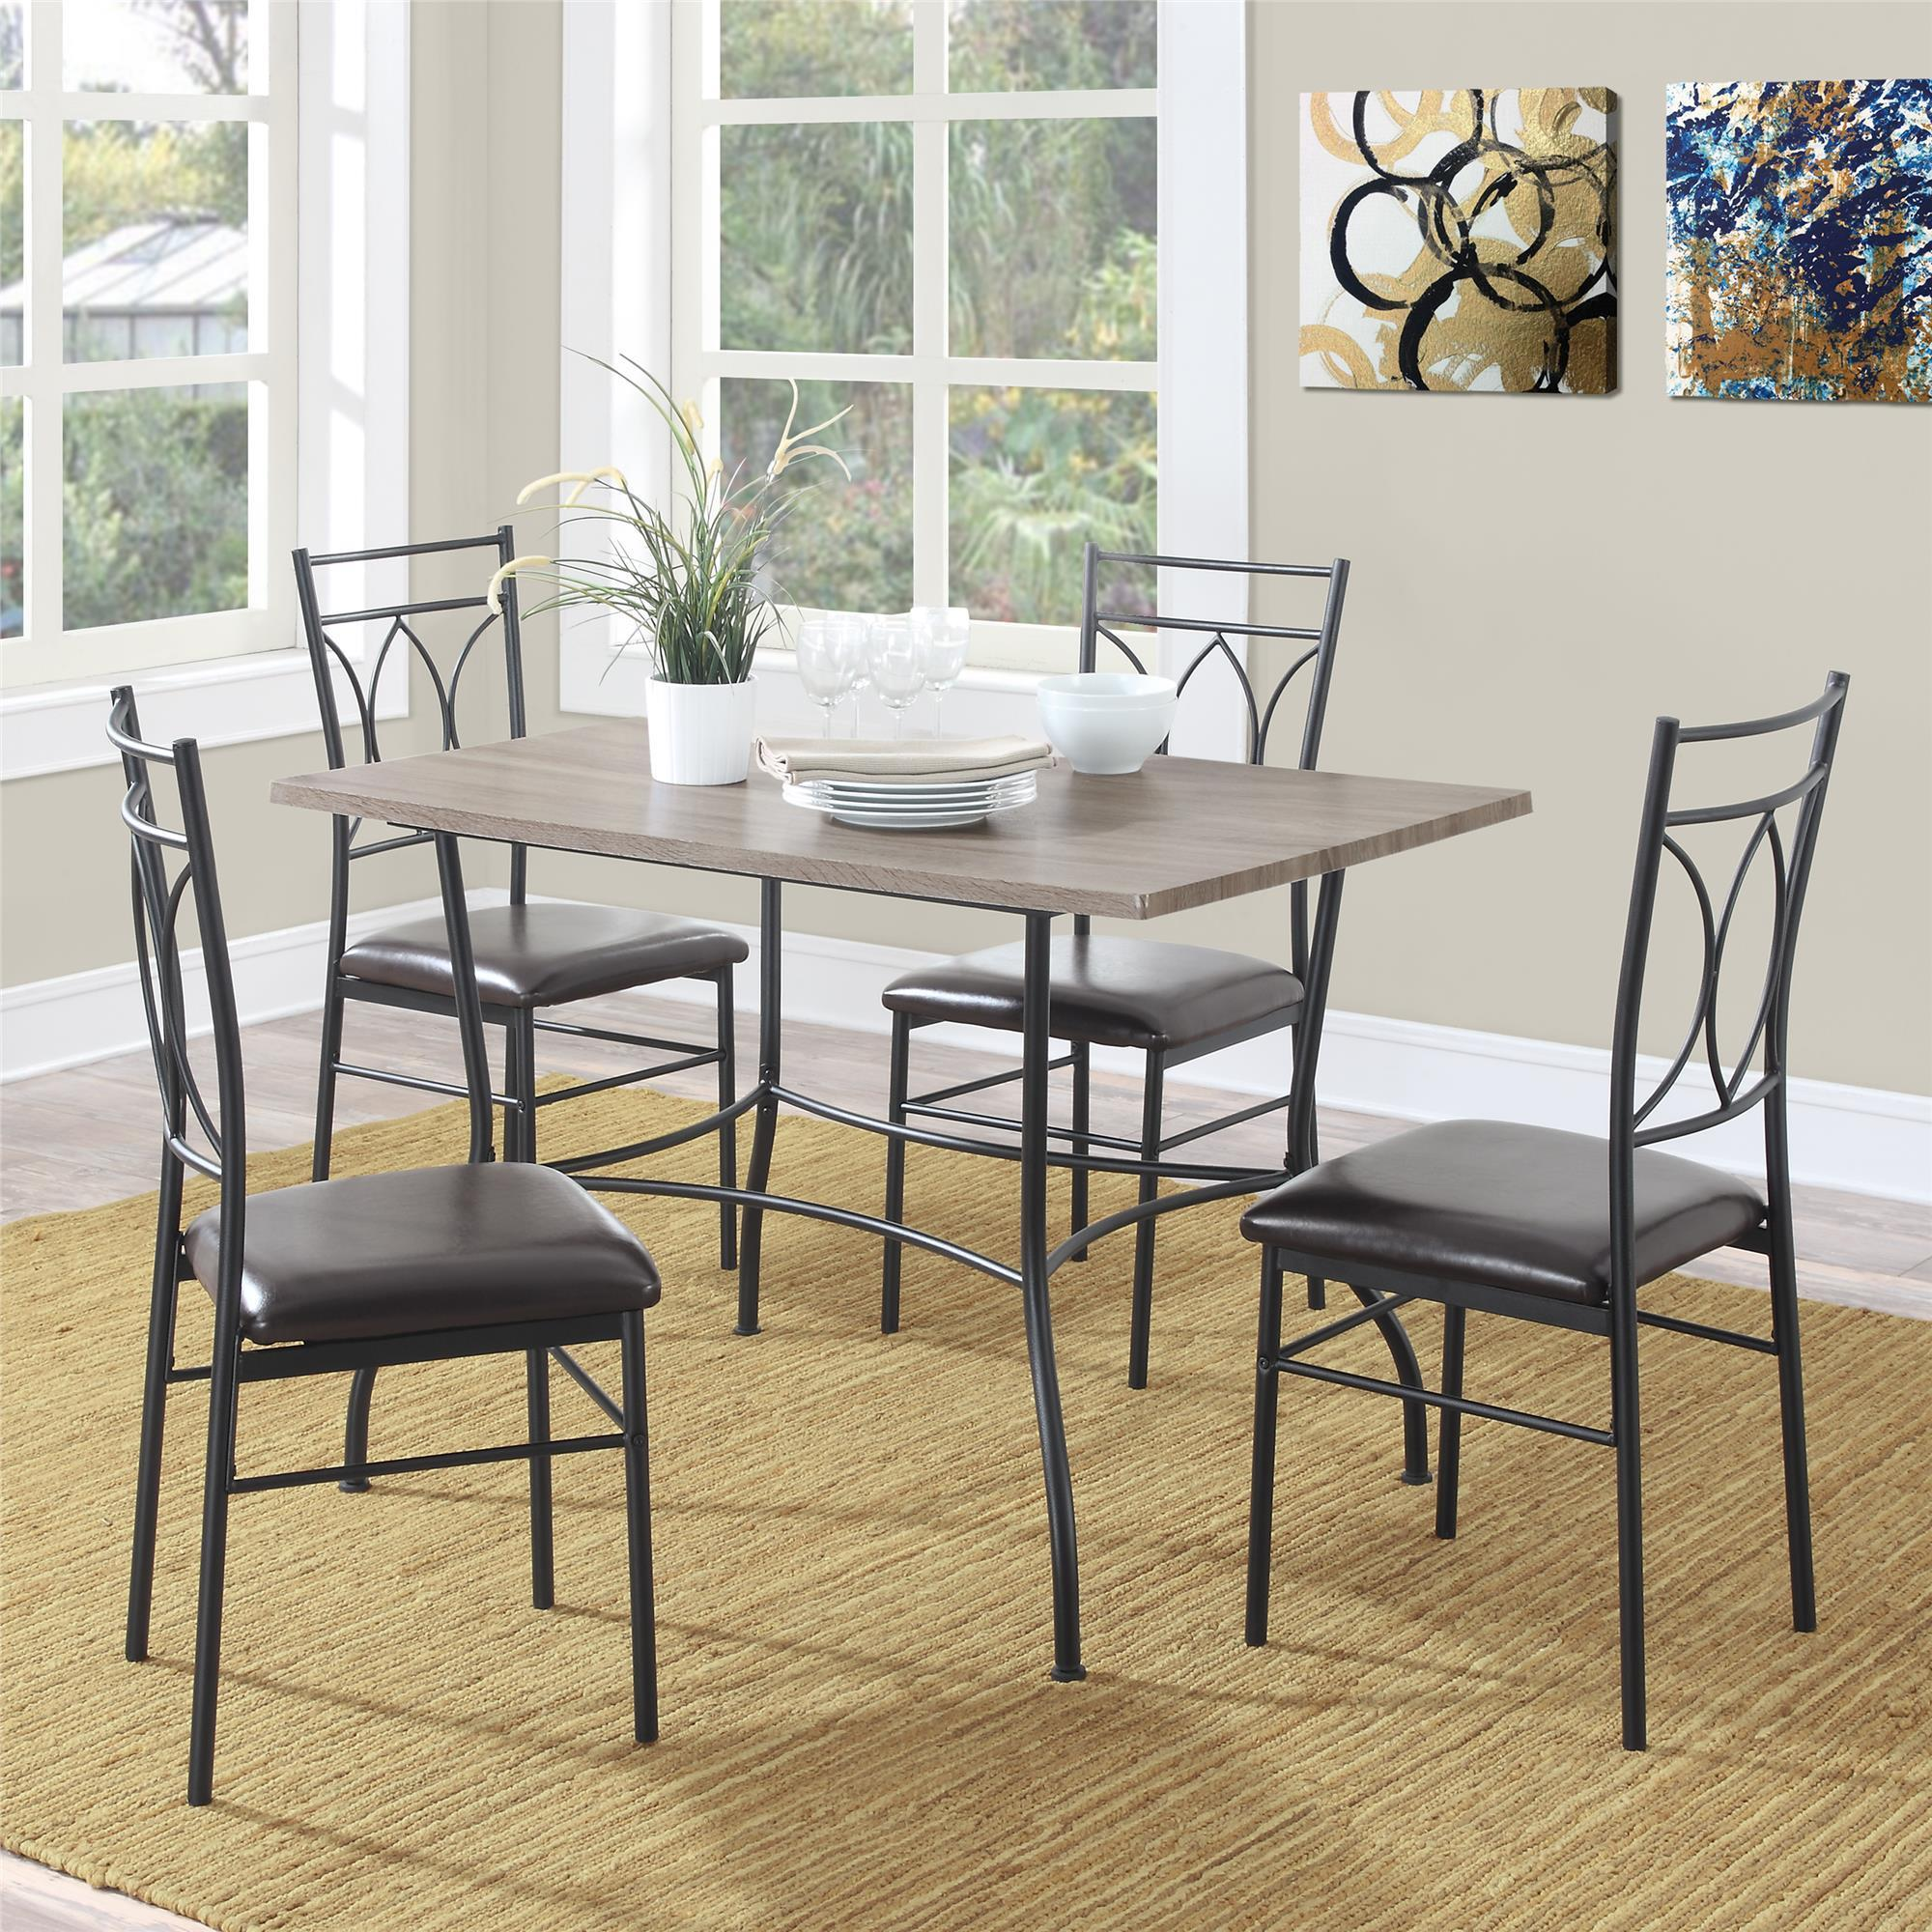 Beau Dorel Living Shelby 5 Piece Rustic Wood And Metal Dining Set